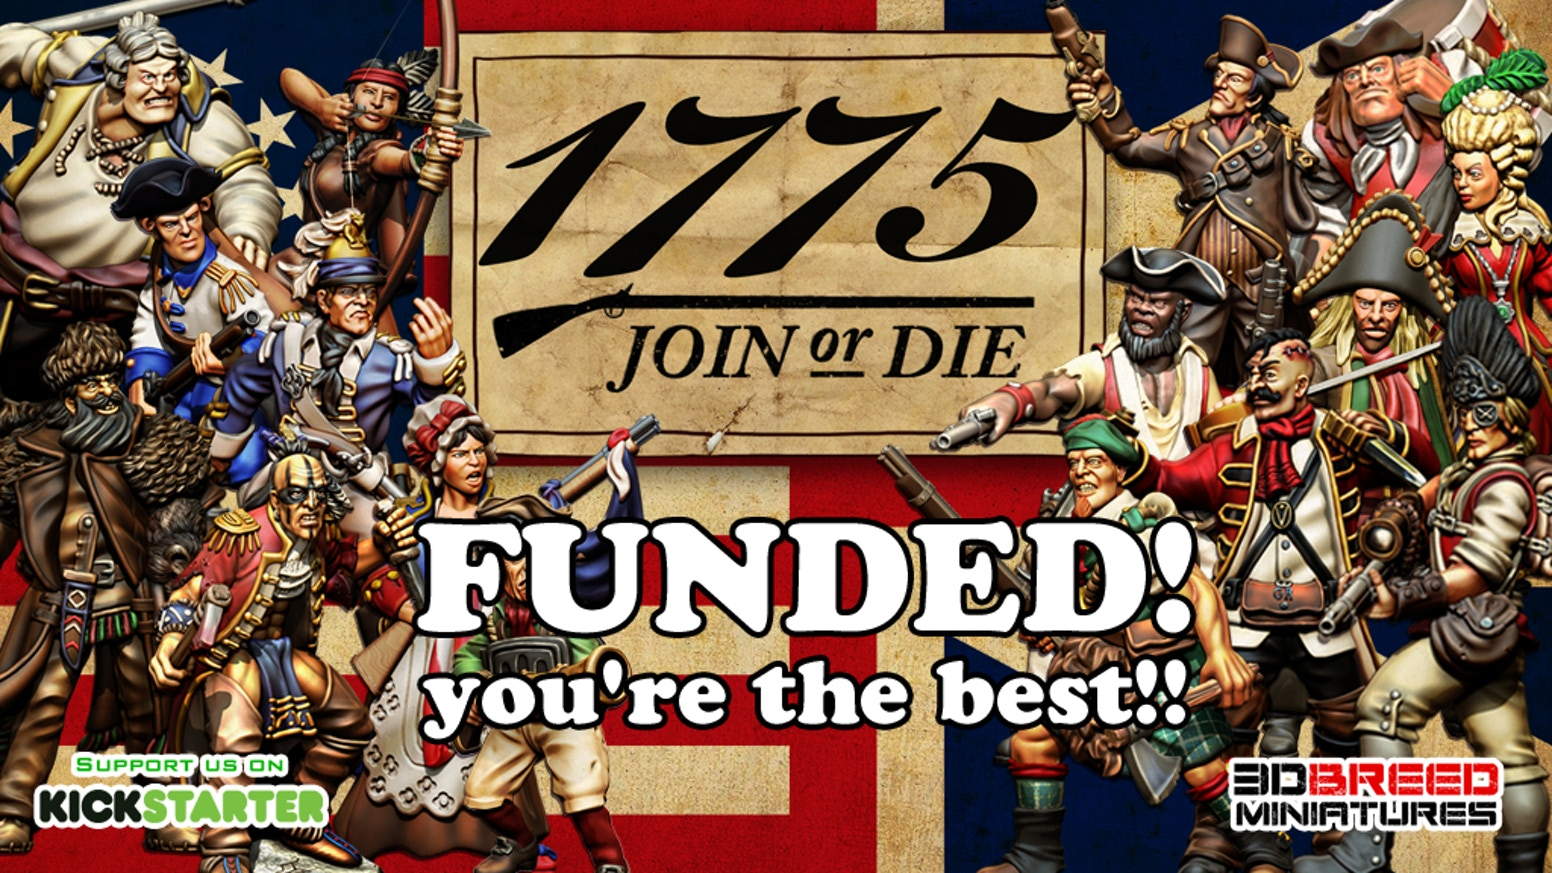 32mm Skirmish miniature game set in the American Revolutionary War, to print and play in your home 3d printer.